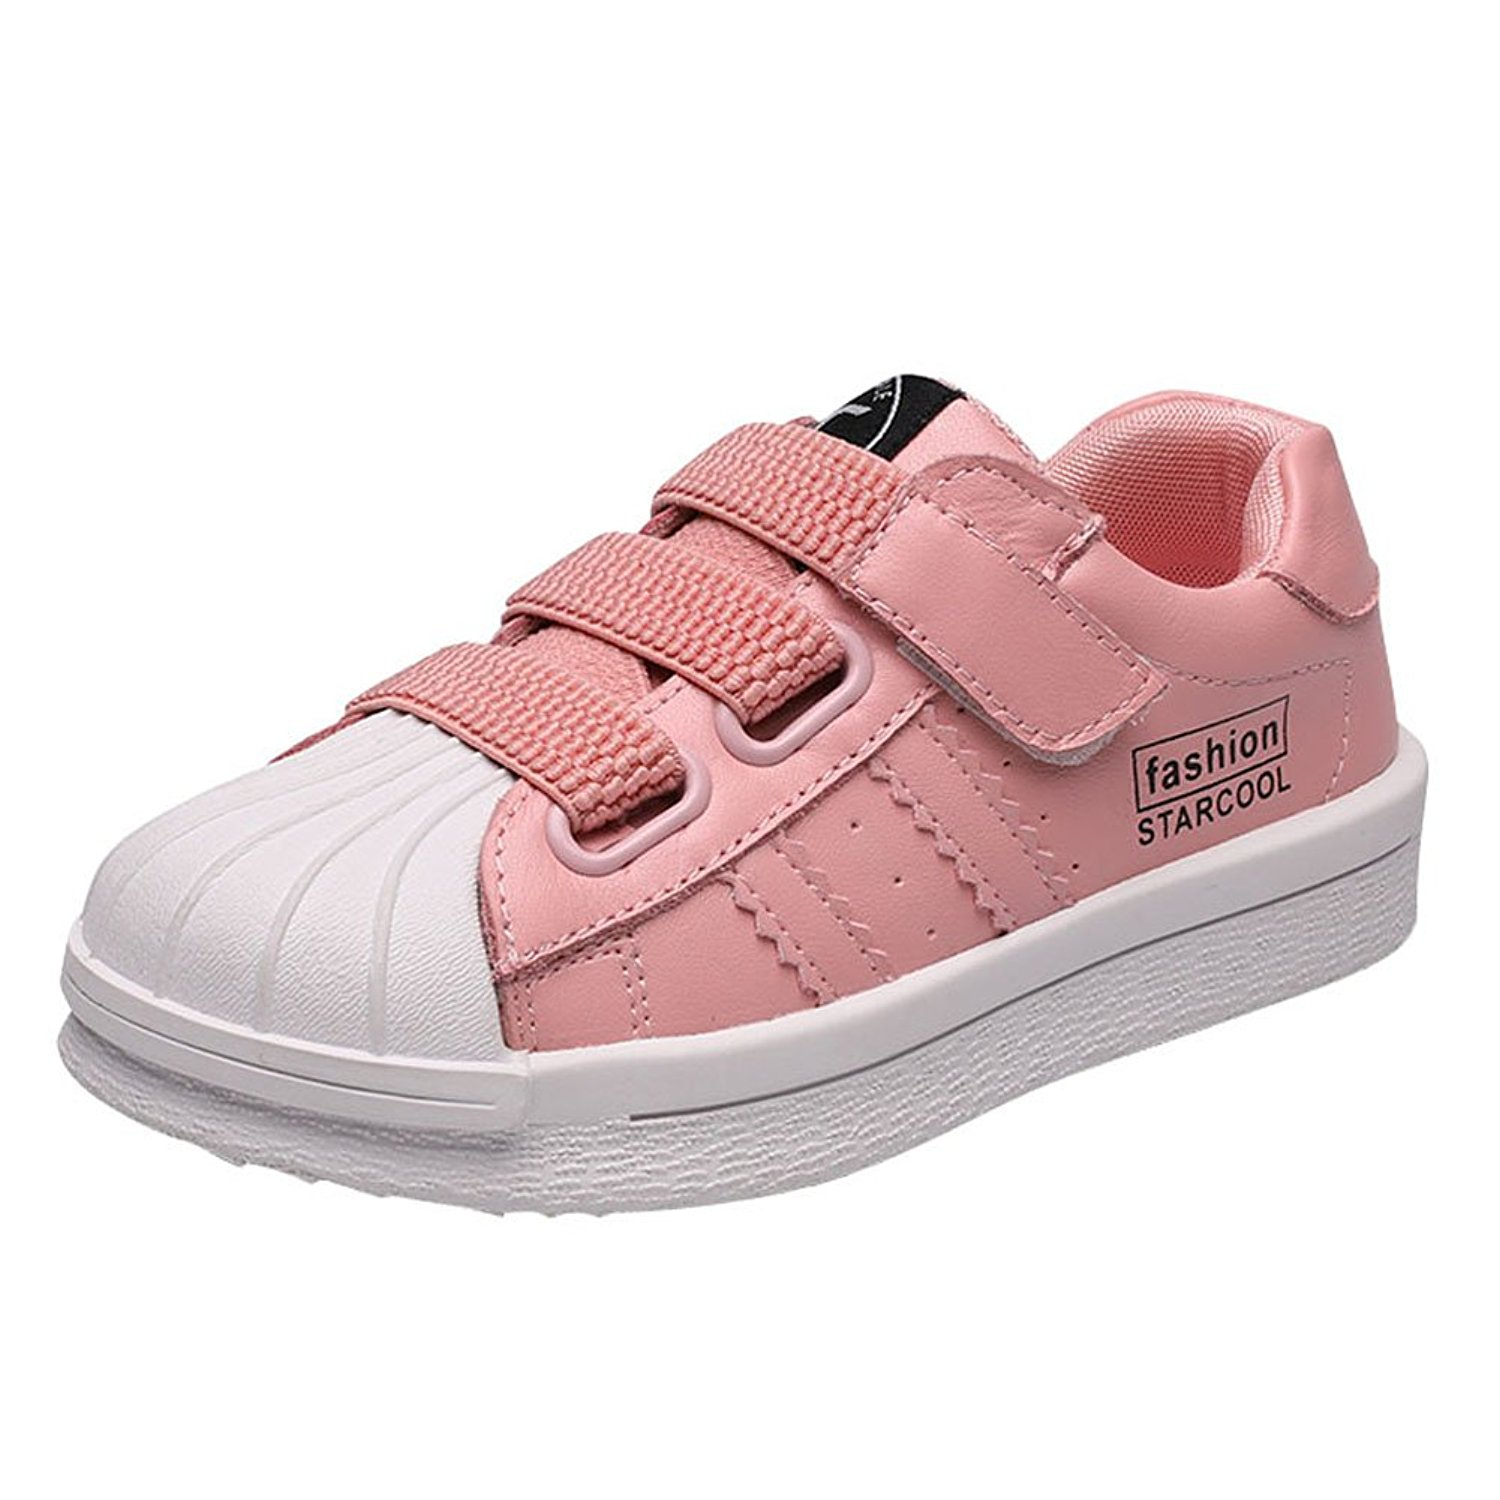 SFNLD InStar Kids Fashion Round Toe Hook and Loop Strappy Sports Sneakers Shoes